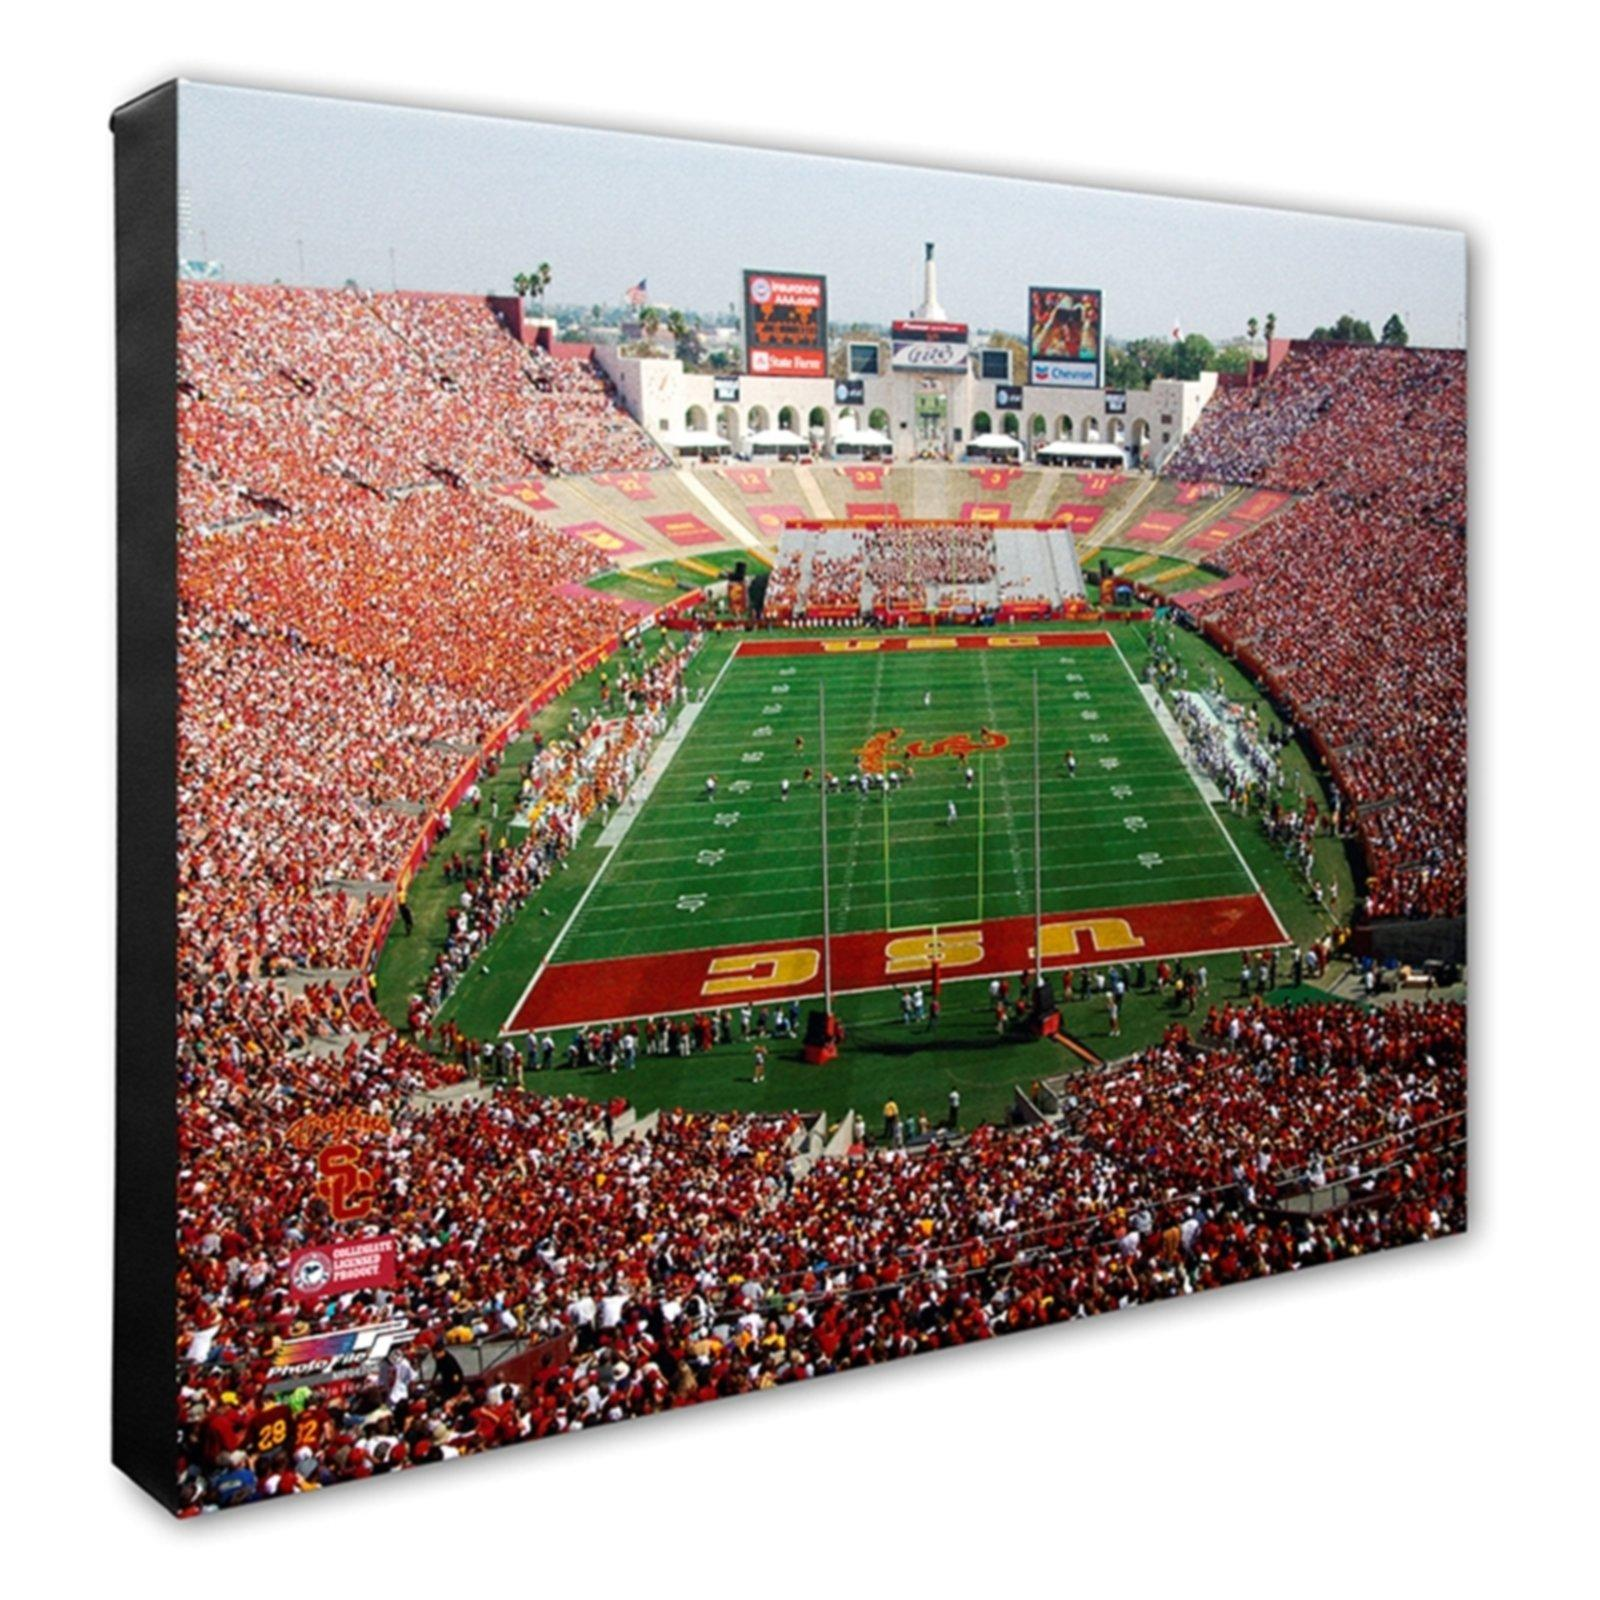 USC Trojans Coliseum Stretched Canvas